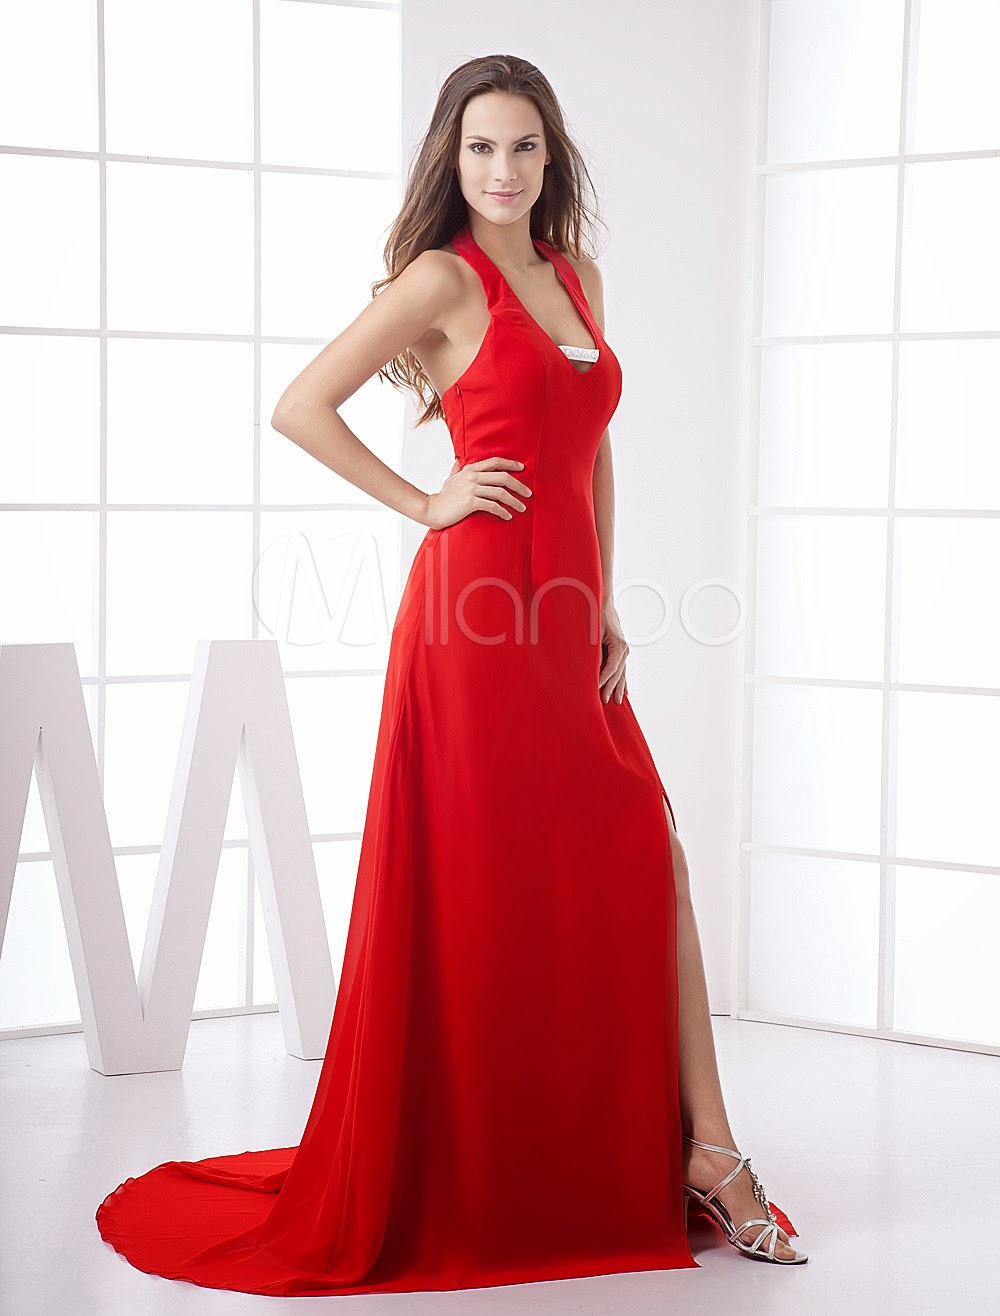 China Wholesale Dresses - Red Sheath Halter Sweep Chiffon Satin Evening Dress